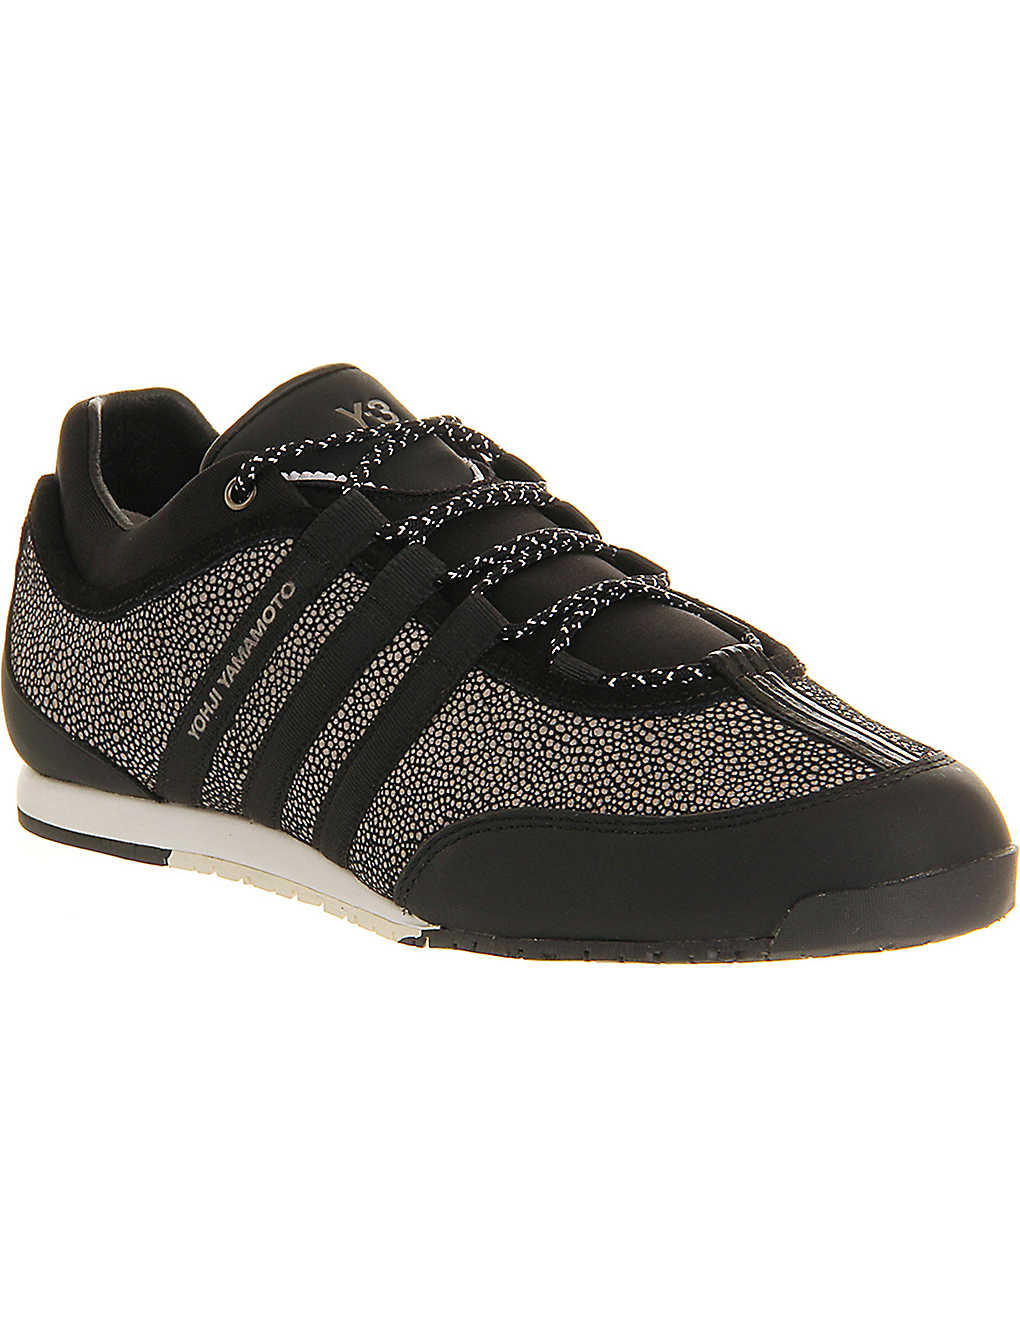 4a4f530f25d77 ADIDAS Y3 - Y3 Boxing leather trainers